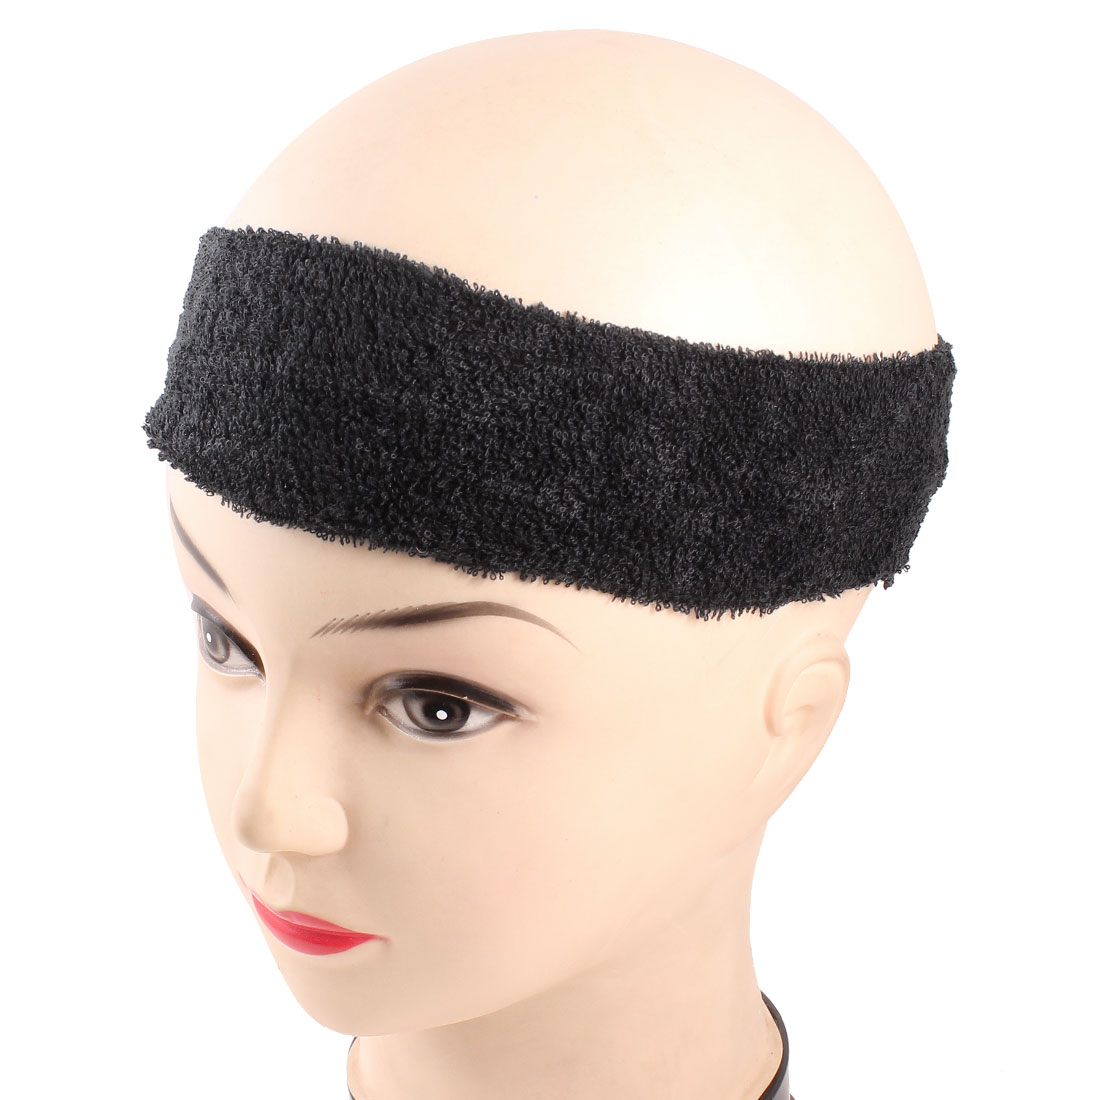 Black Stretchy Headbands Hairband Hair Holder for Women